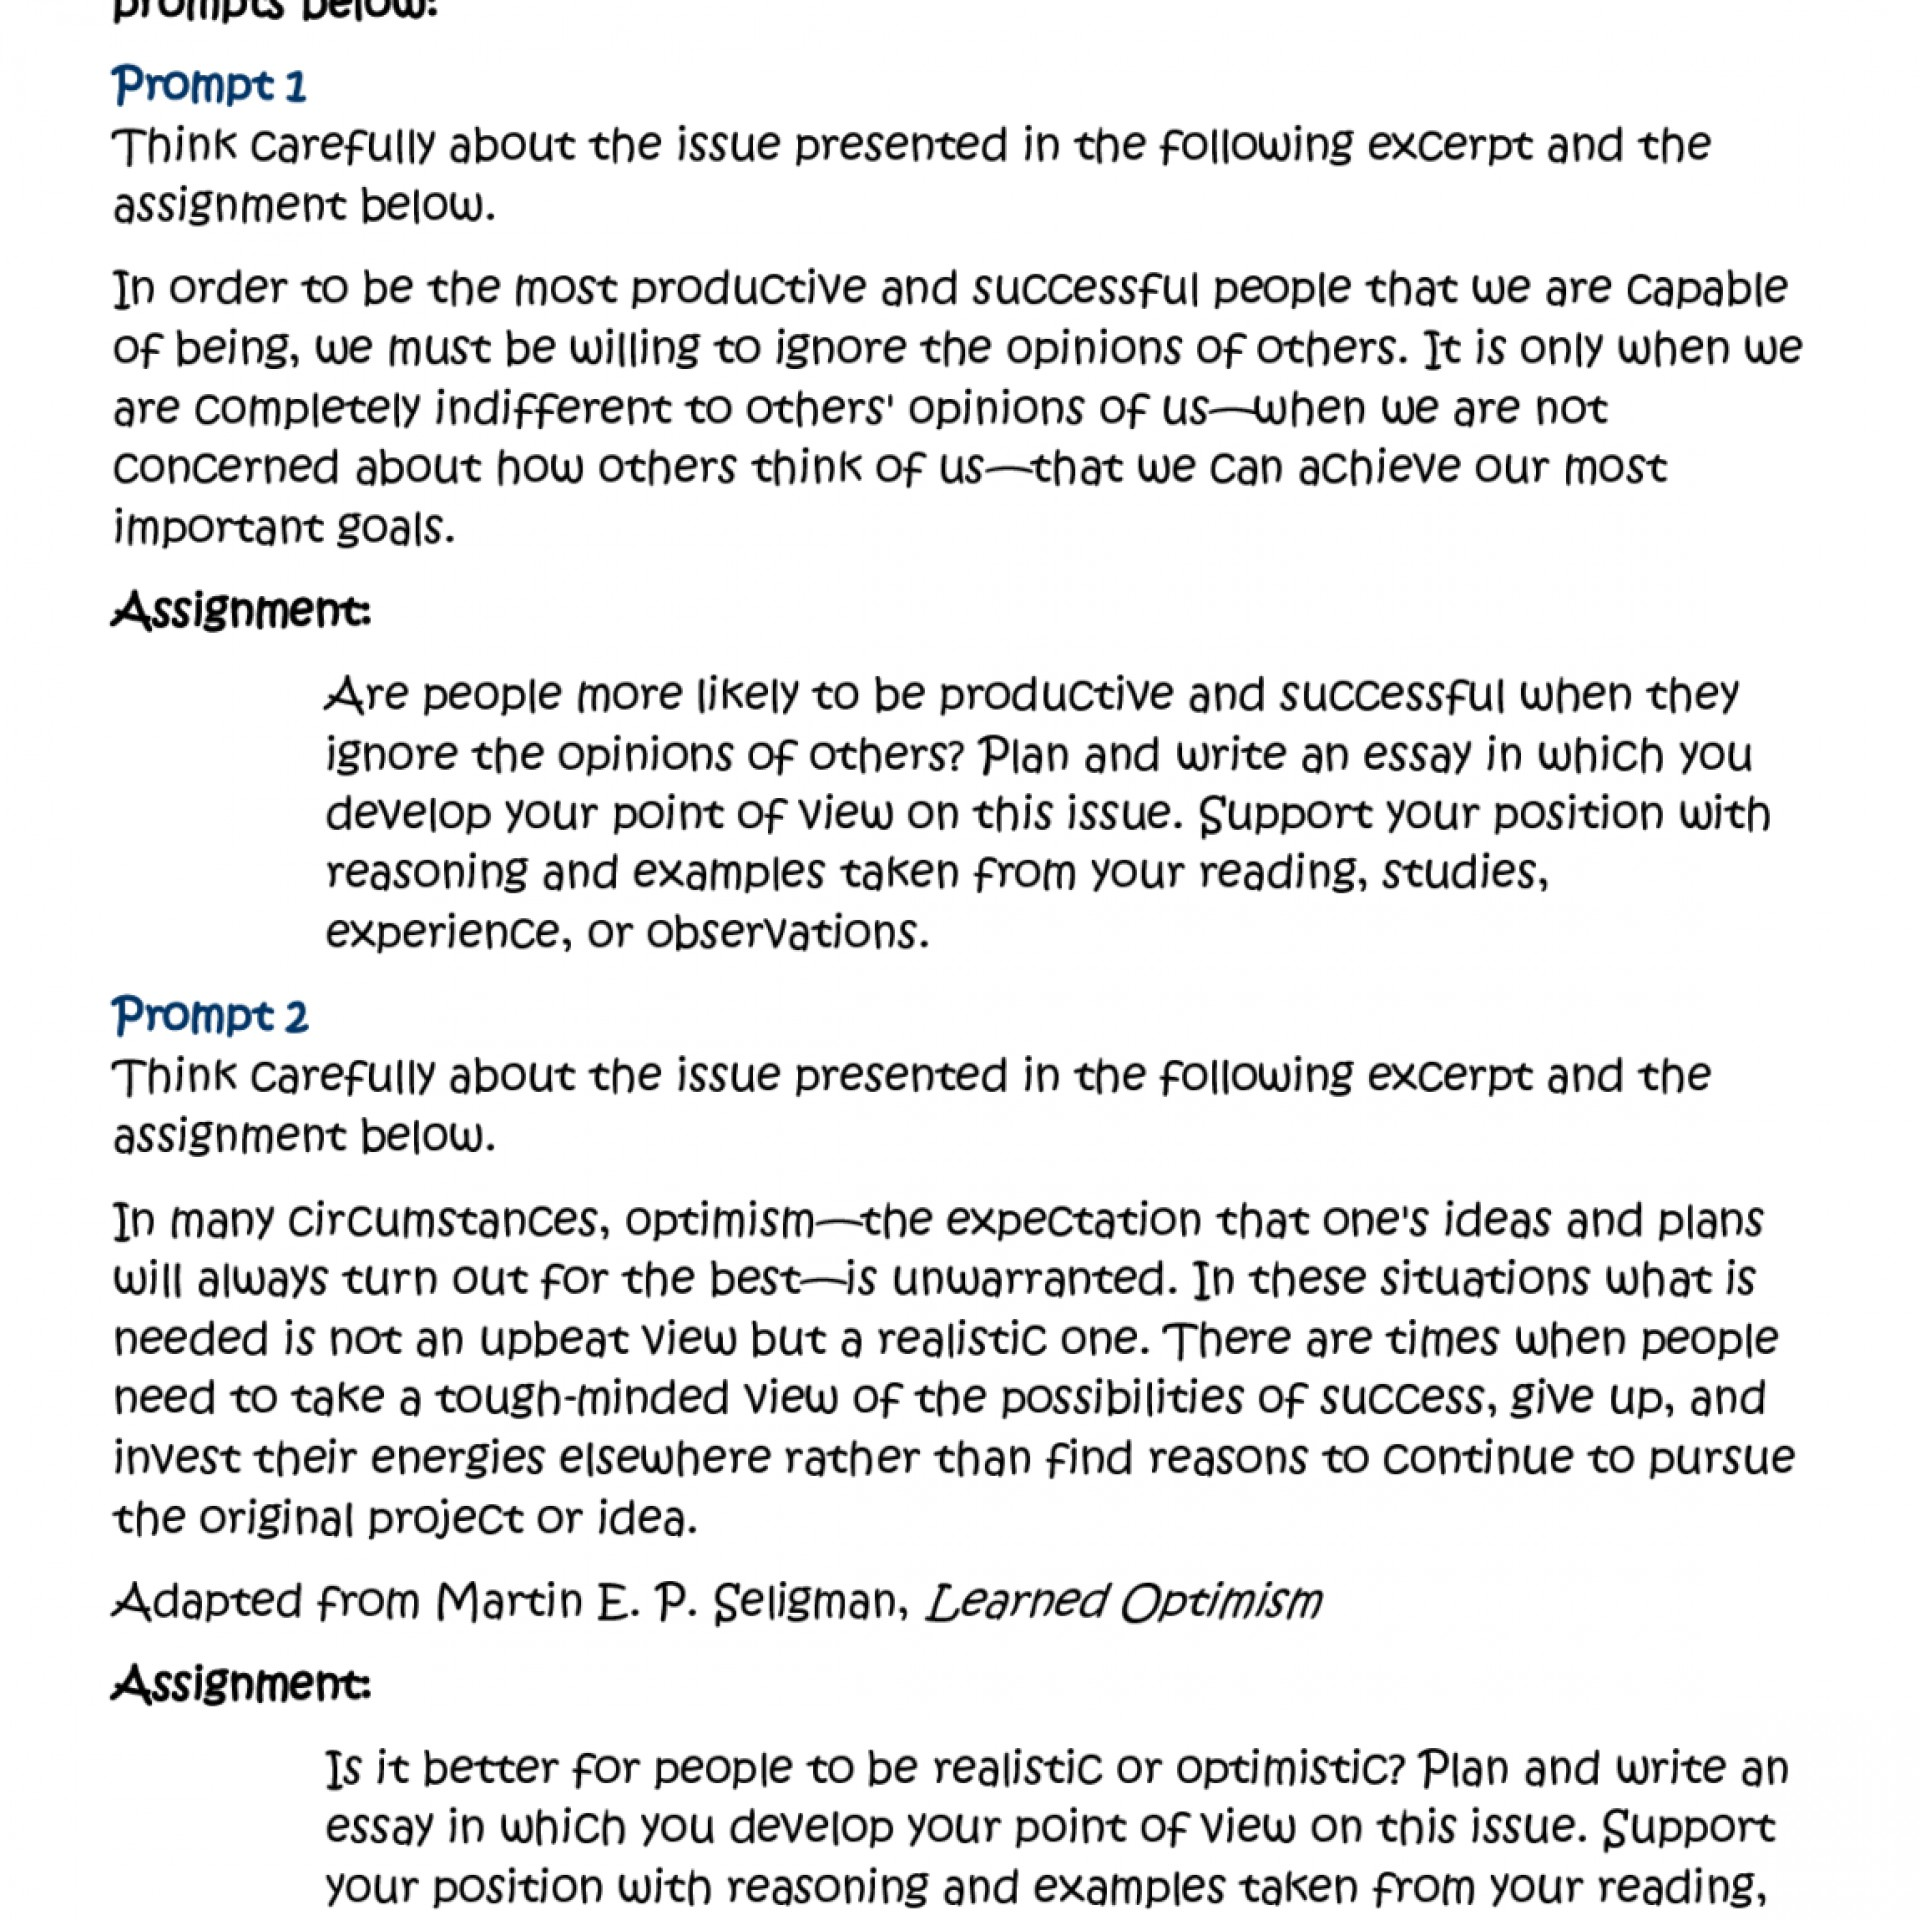 018 Sat Essay Format Example Cover Letter Best General Writing Tipsgsat At Examples And Of Question Jimmy Carter To Answer Everyromptrepscholar Breathtaking New Template Pdf 2 Paper Old 1920